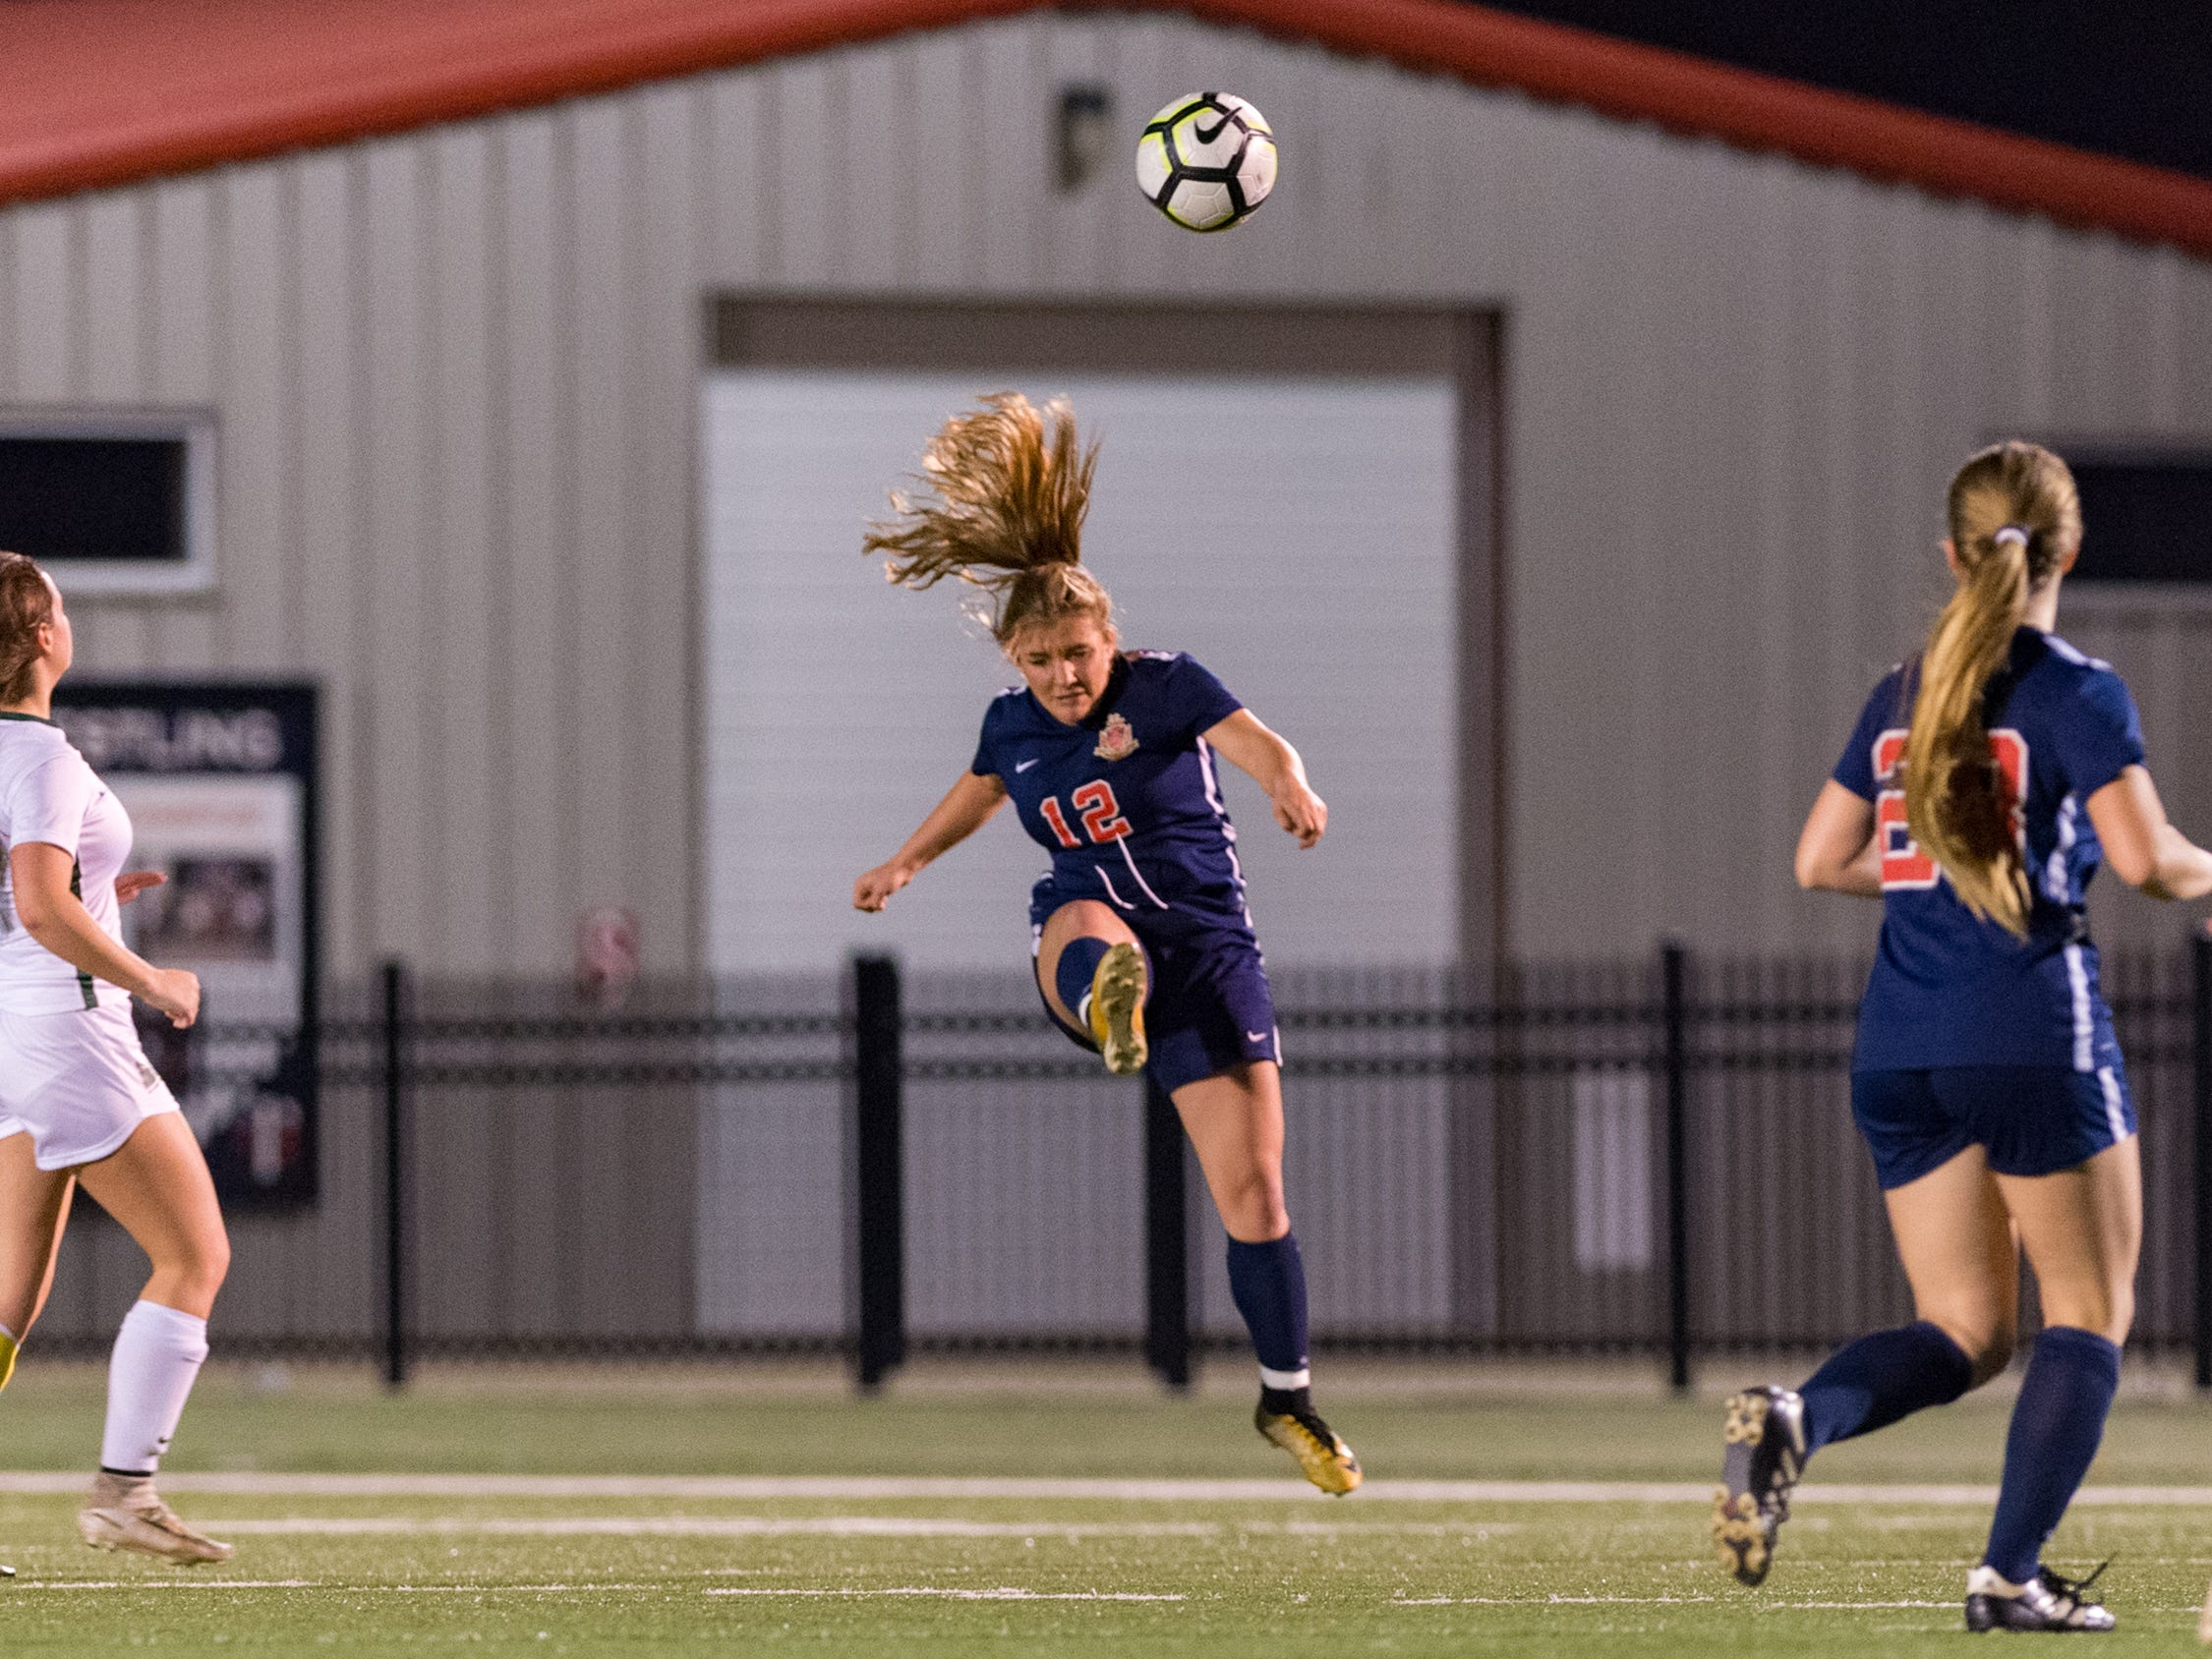 Morgan Brasseaux header as Teurlings Catholic girls soccer takes down Holy Savior Menard in the quarterfinals of the LHSAA soccer playoffs. Monday, Feb. 11, 2019.